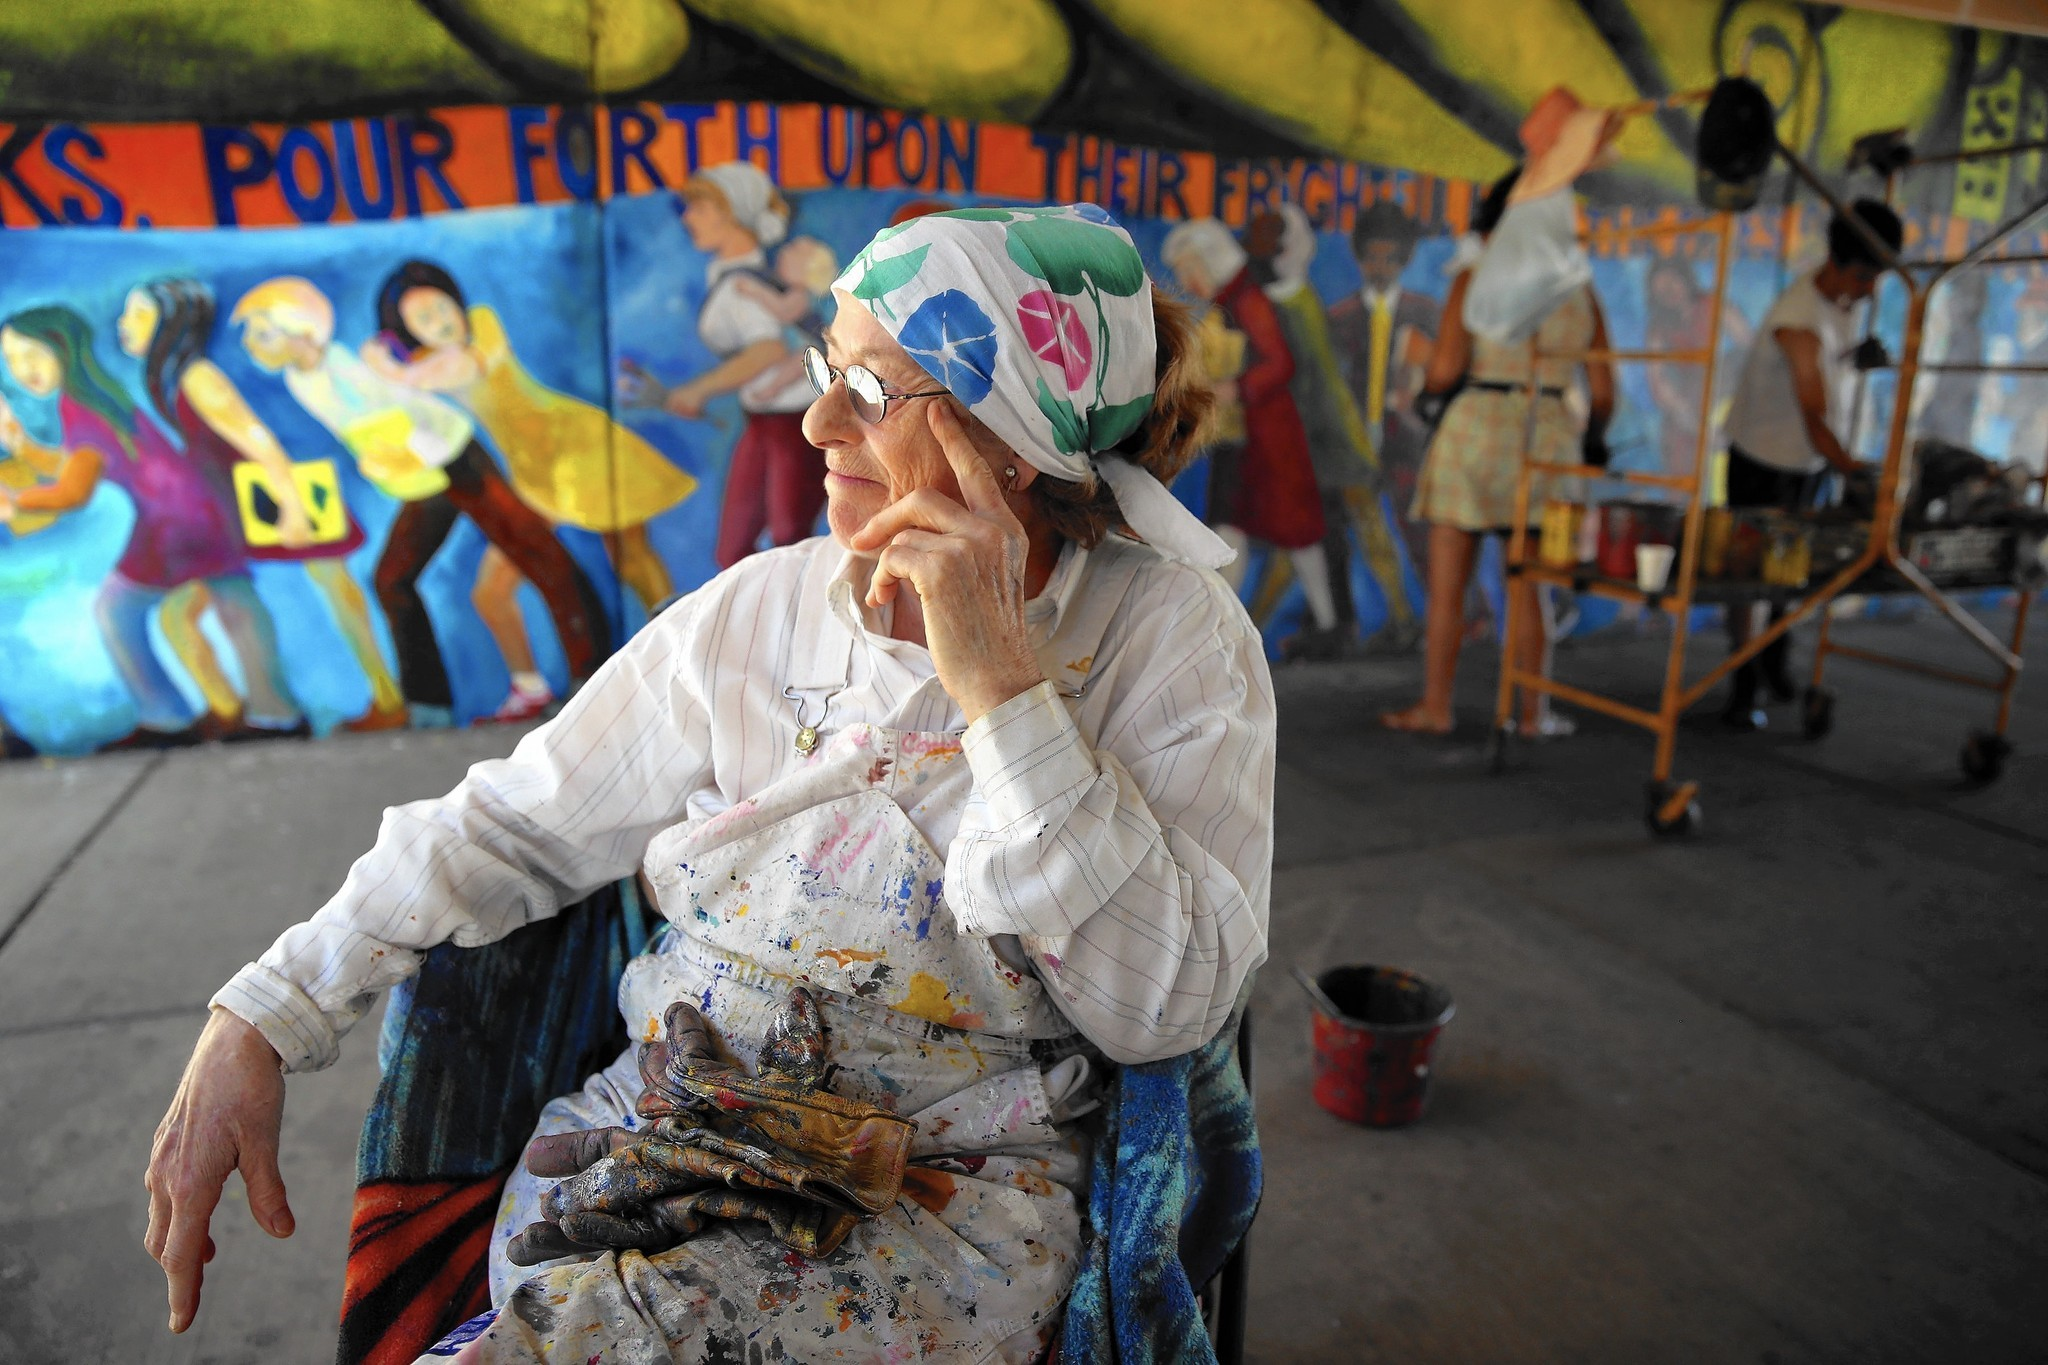 Hyde Park mural artist returns decades later to give worn art new life